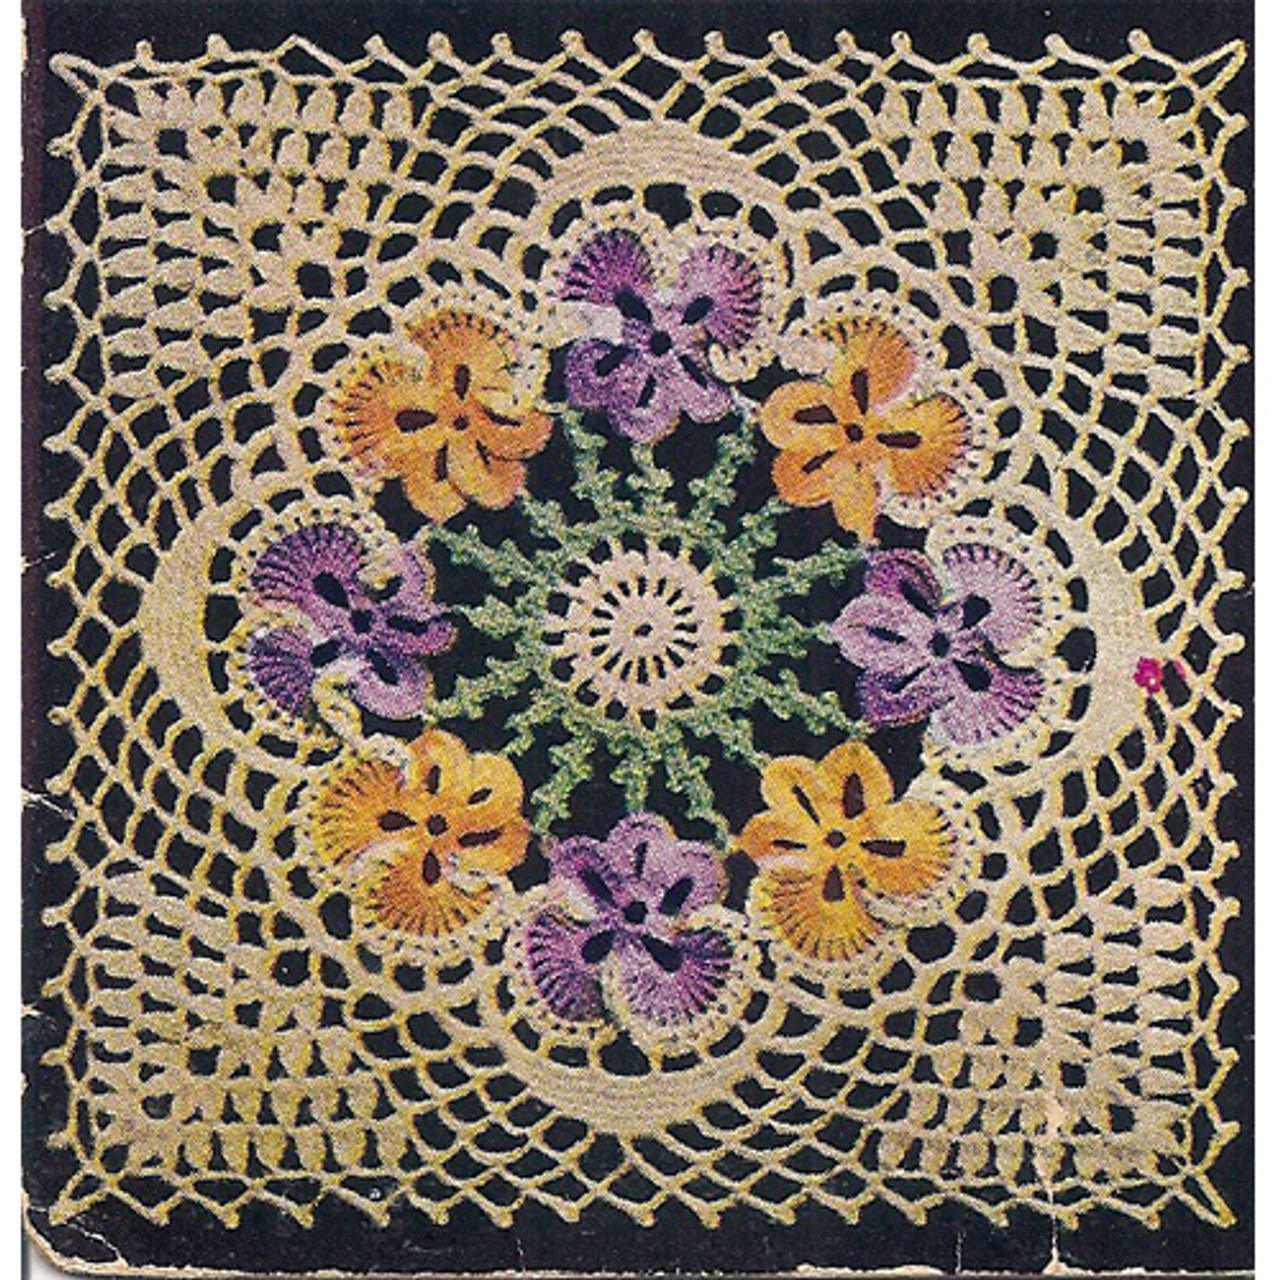 Crochet Pansy Medallion for Bedspreads